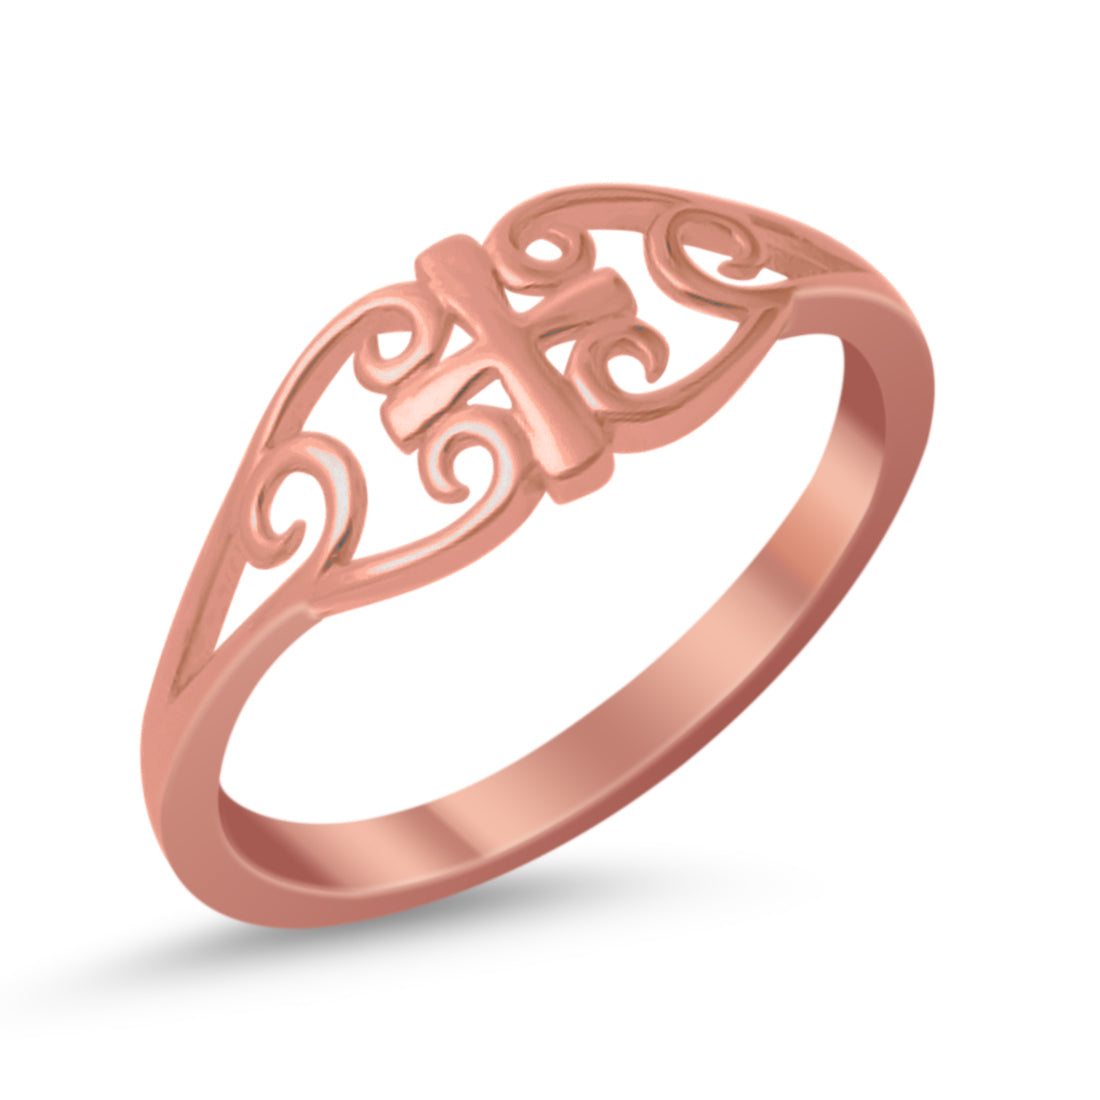 Filigree Celtic Cross Medieval Ring Band Rose Tone 925 Sterling Silver